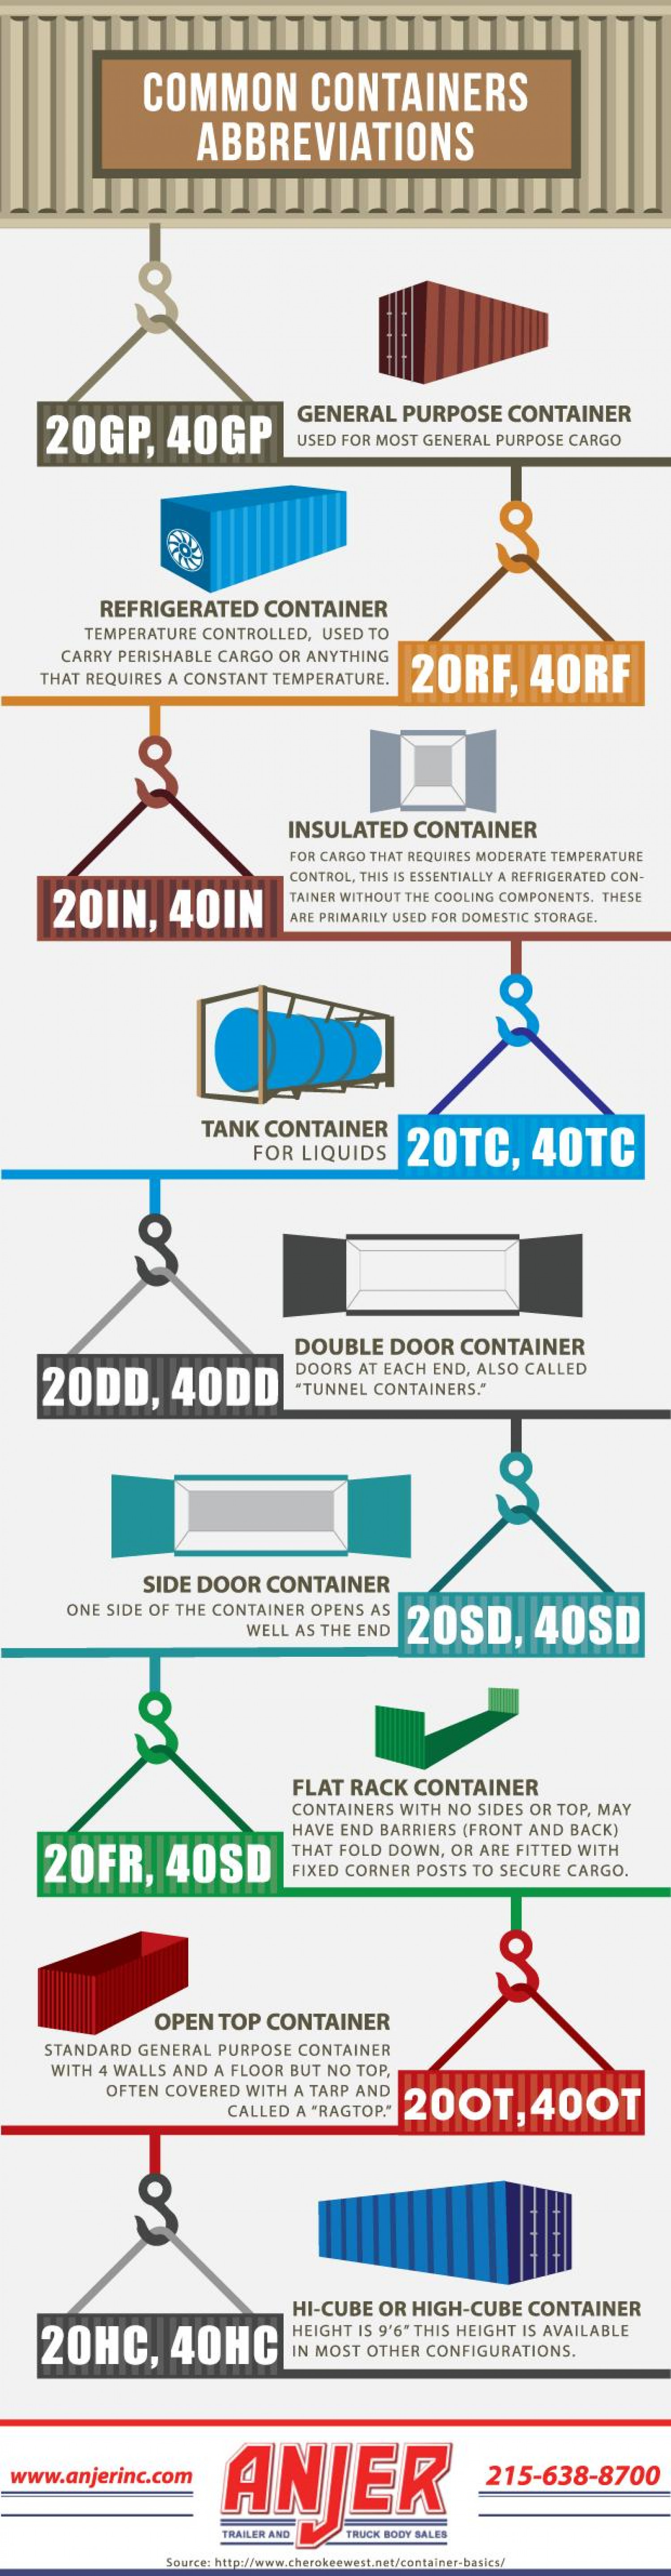 Common Containers Abbrevations Infographic